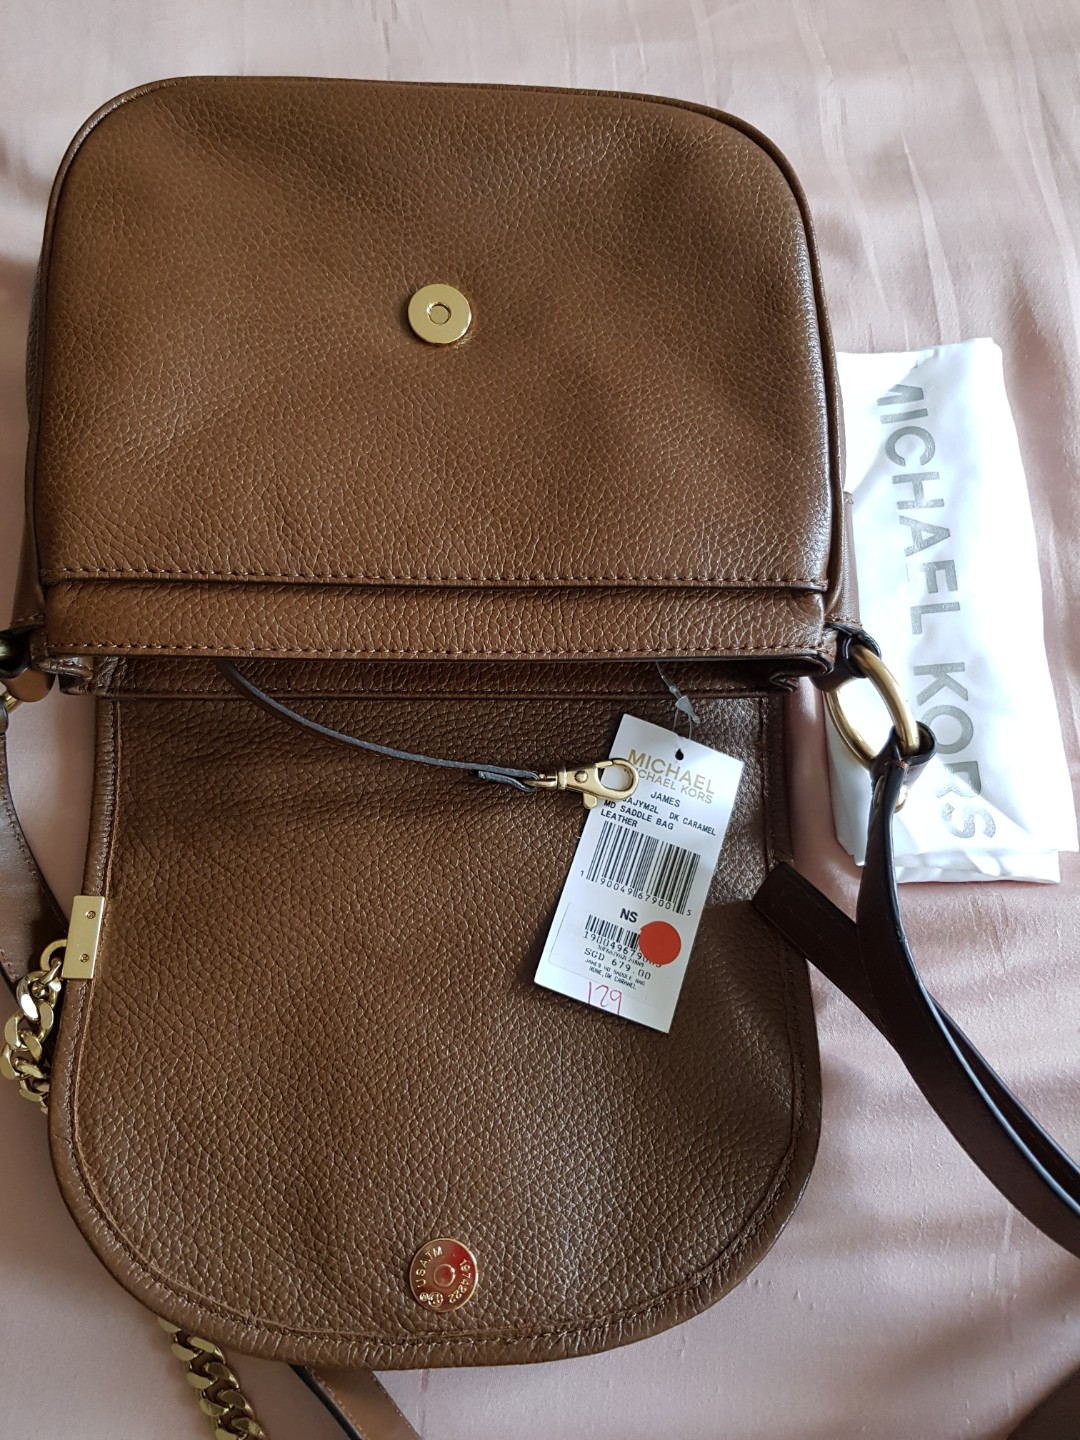 21e1bd4518098f Michael Kors MD Saddle Bag, Luxury, Bags & Wallets, Sling Bags on Carousell